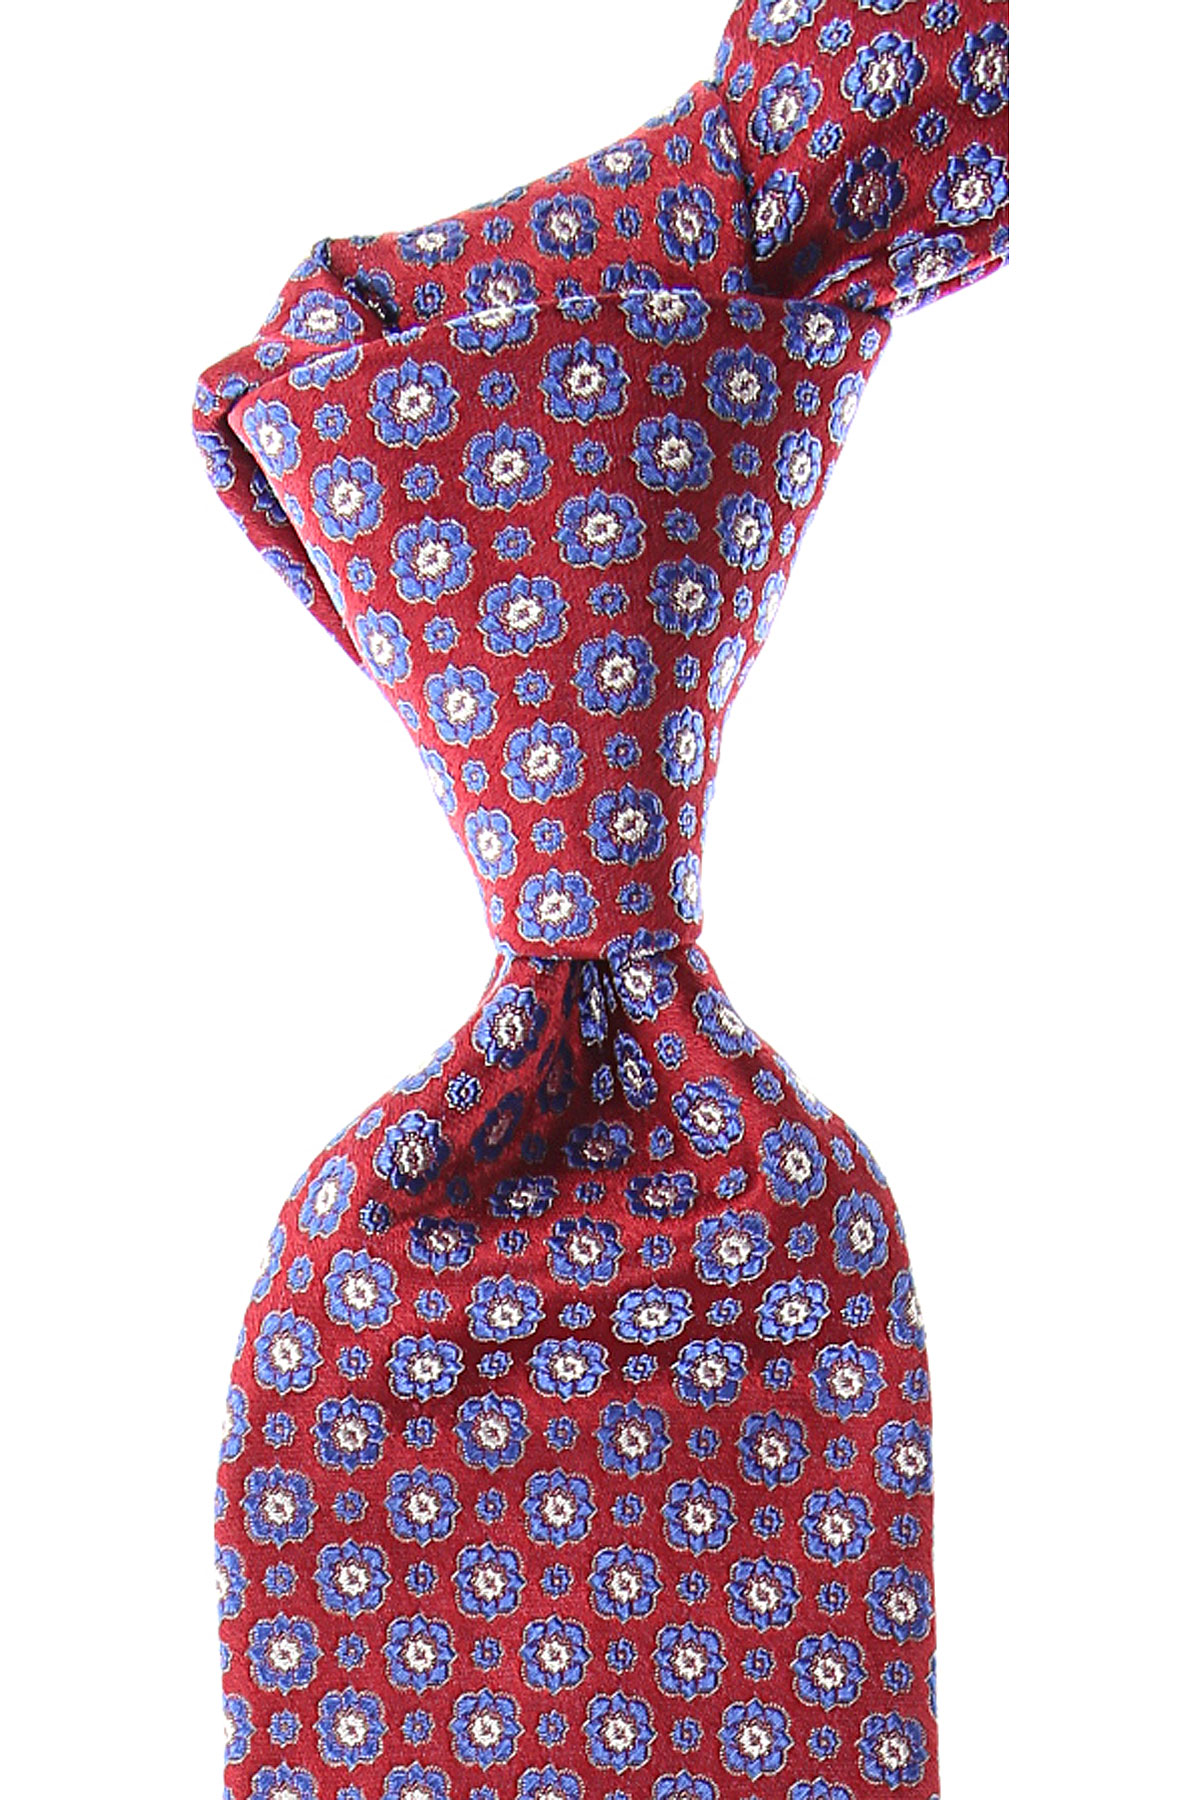 Canali Ties On Sale, Cardinal Red, Silk, 2019